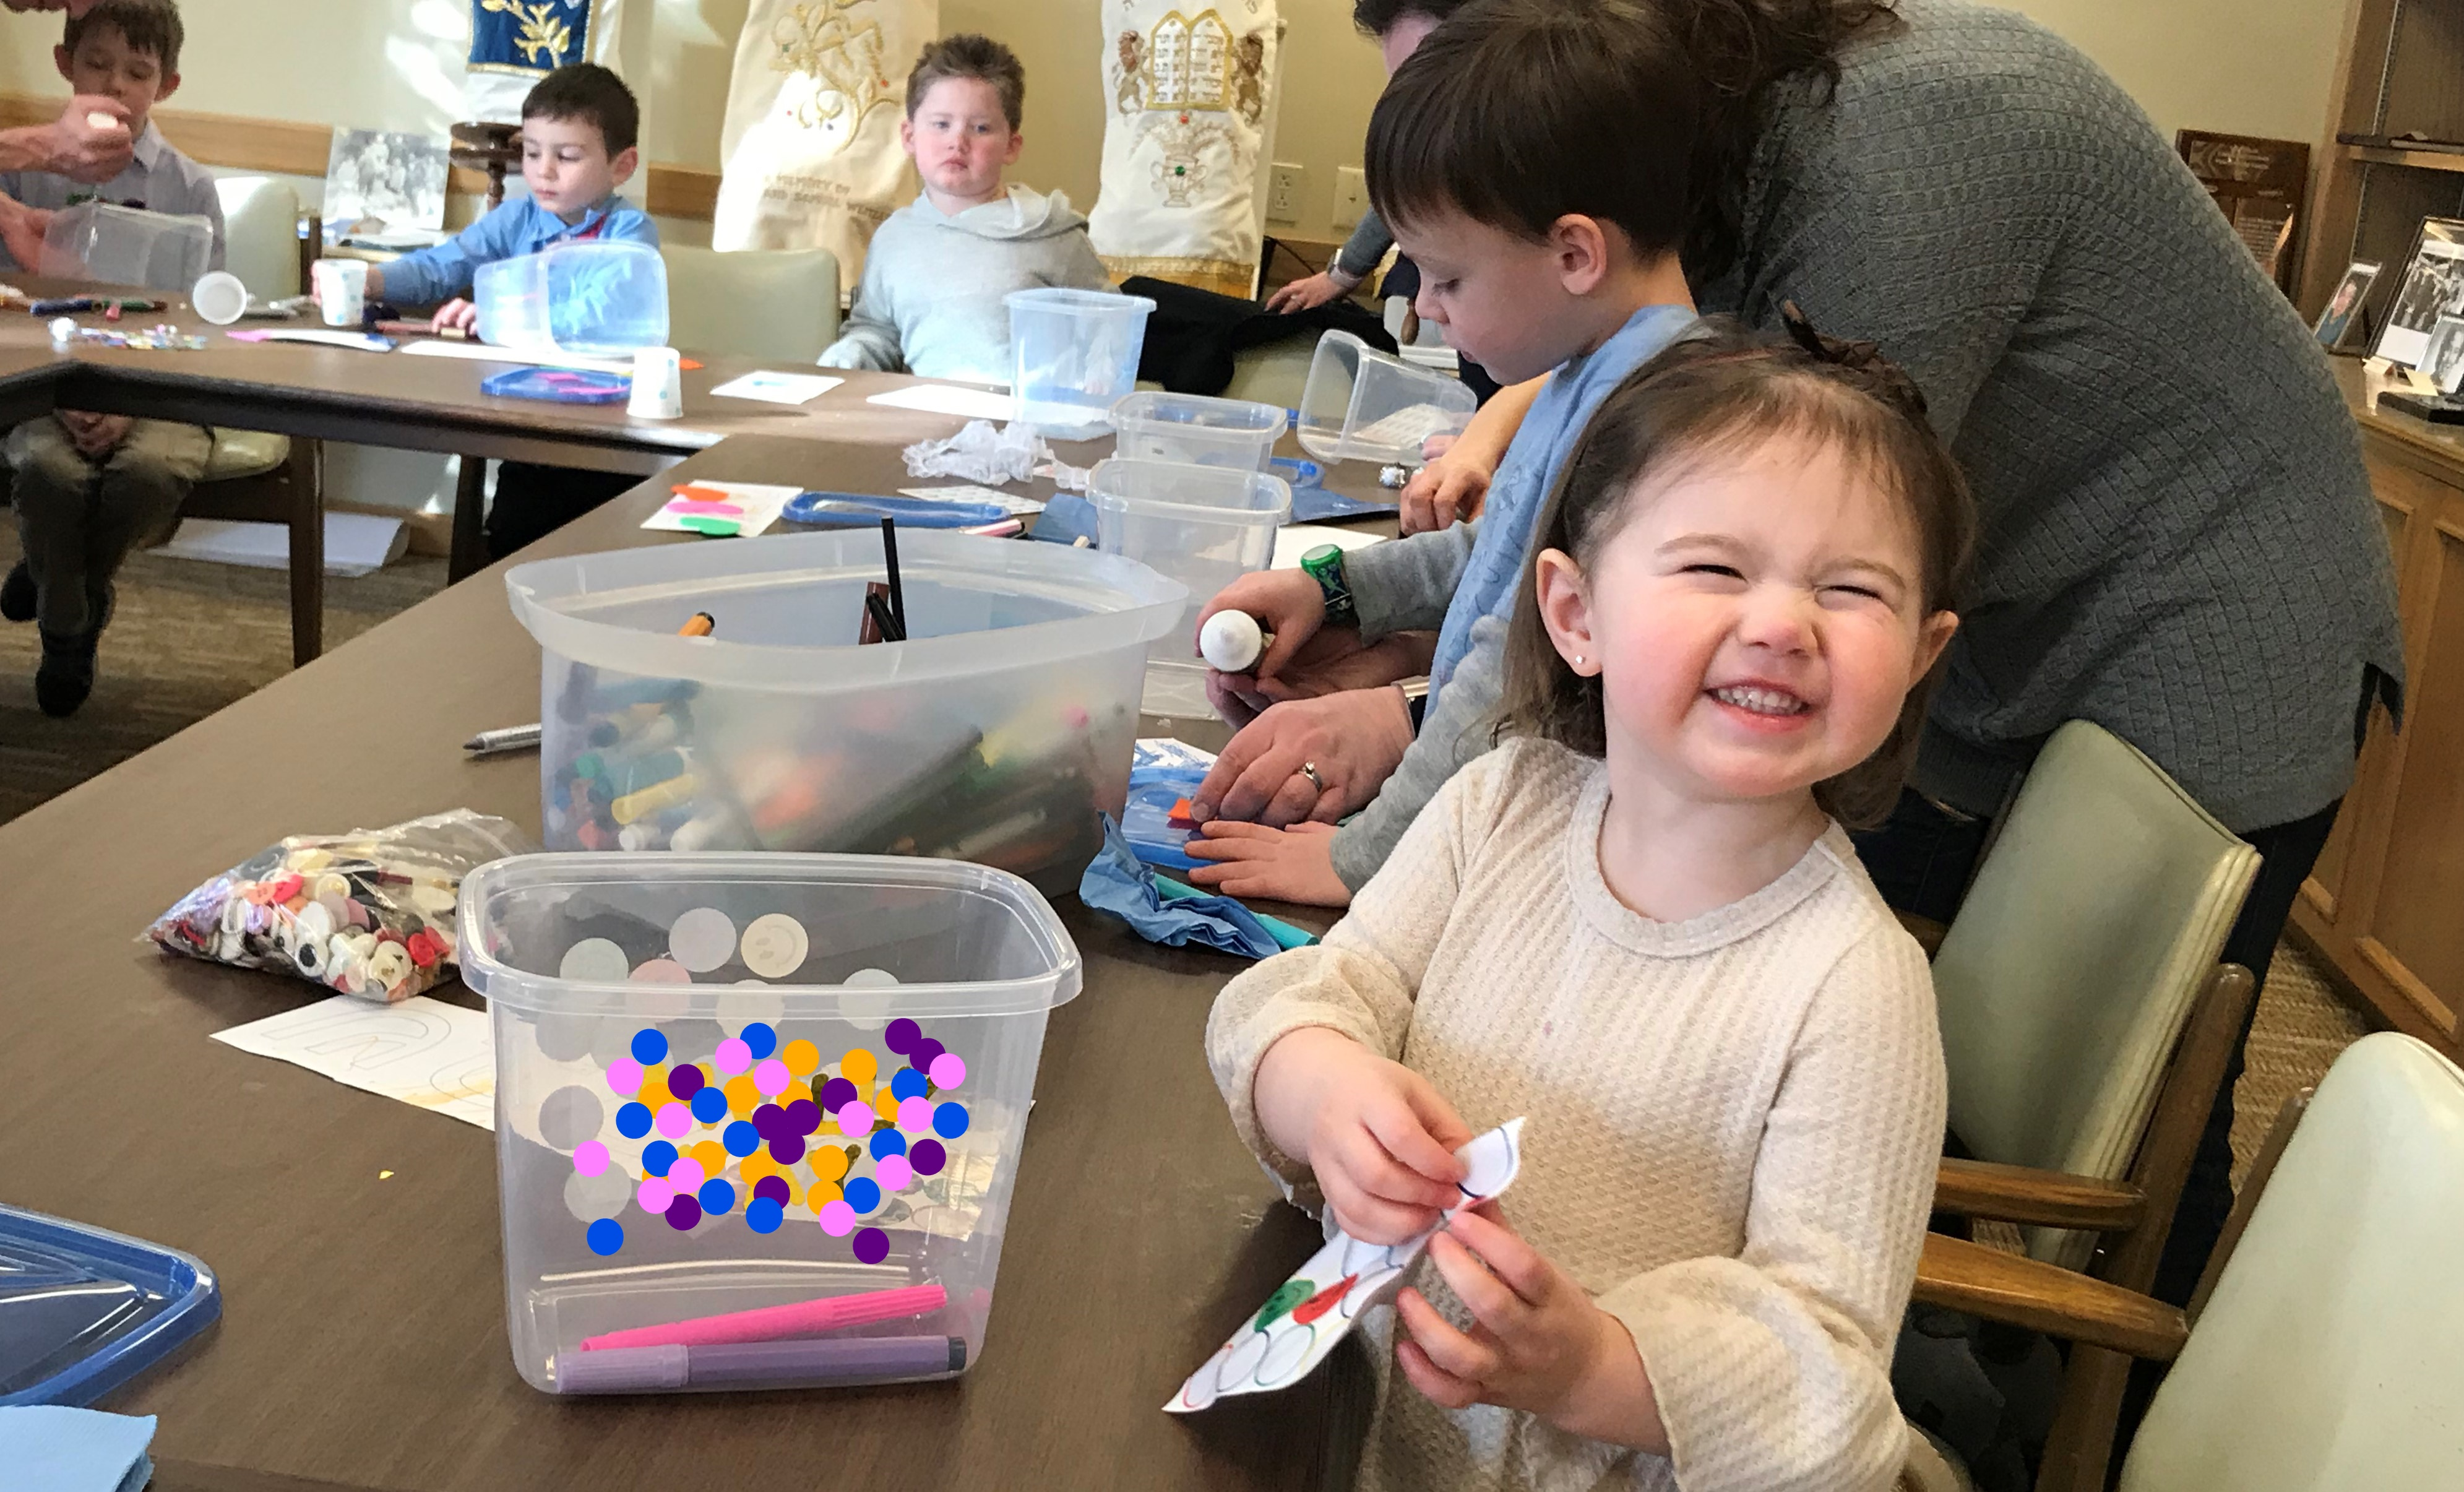 "<a href=""https://www.congregationrodefsholom.org/calendar""